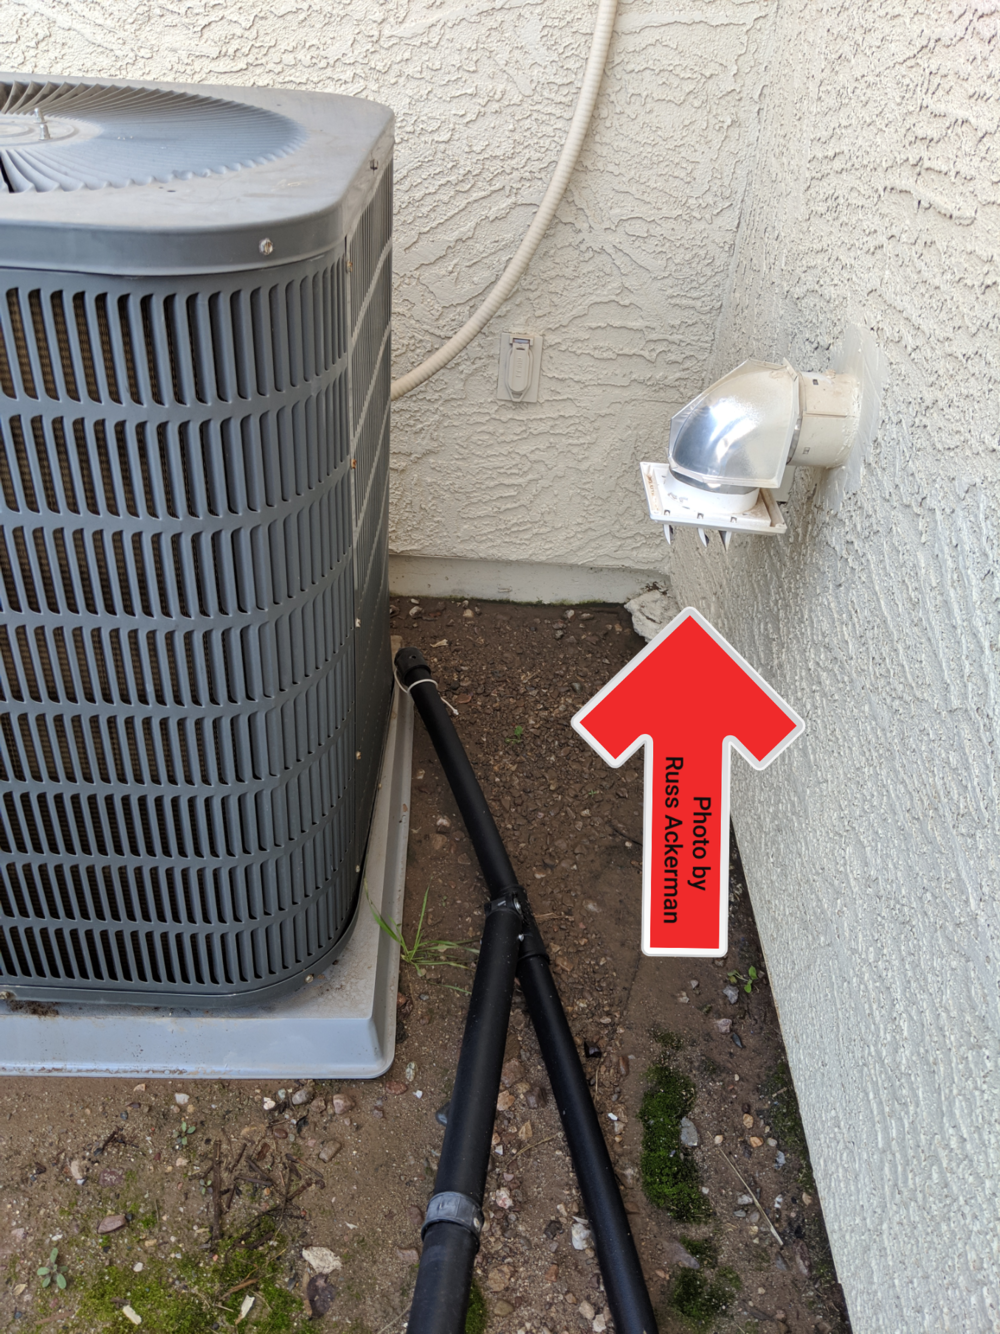 A dryer exhaust vent should not terminate near a heat pump. This will clog condenser coils and the hot air will decrease the efficiency of your HVAC system.